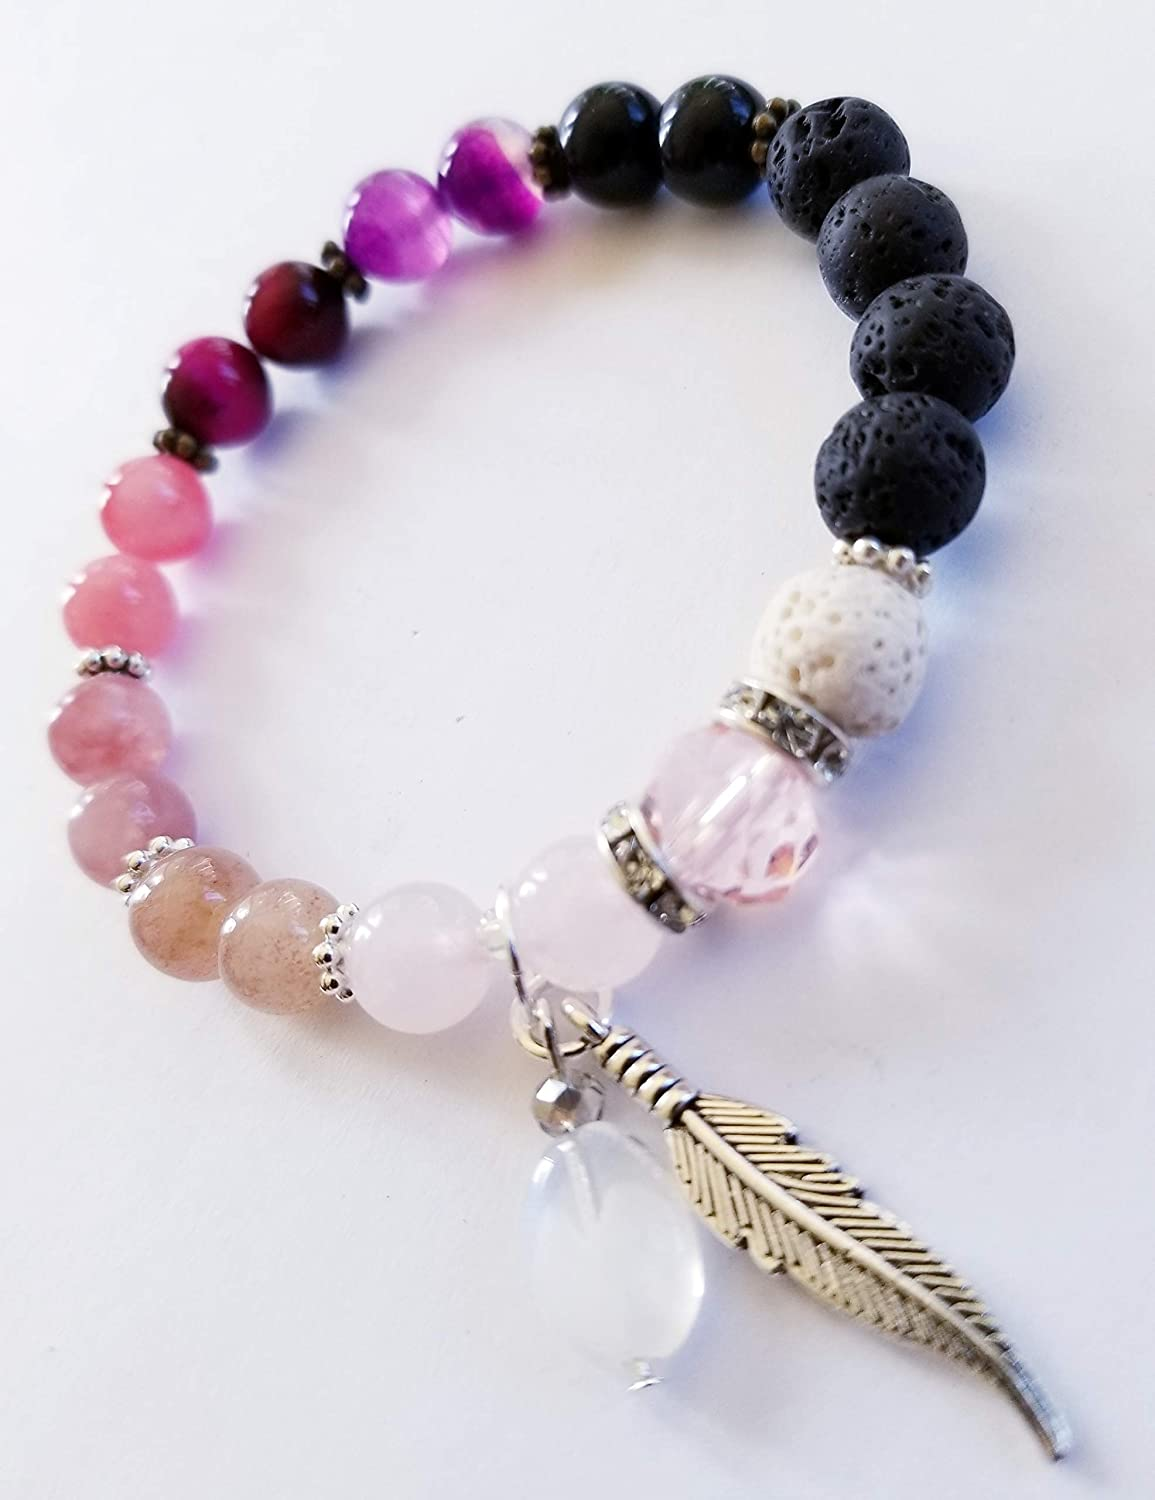 Healing Stone Bracelet in Shades of Pink with Black and White Lava Stone Beads for Essential Oil Diffusion